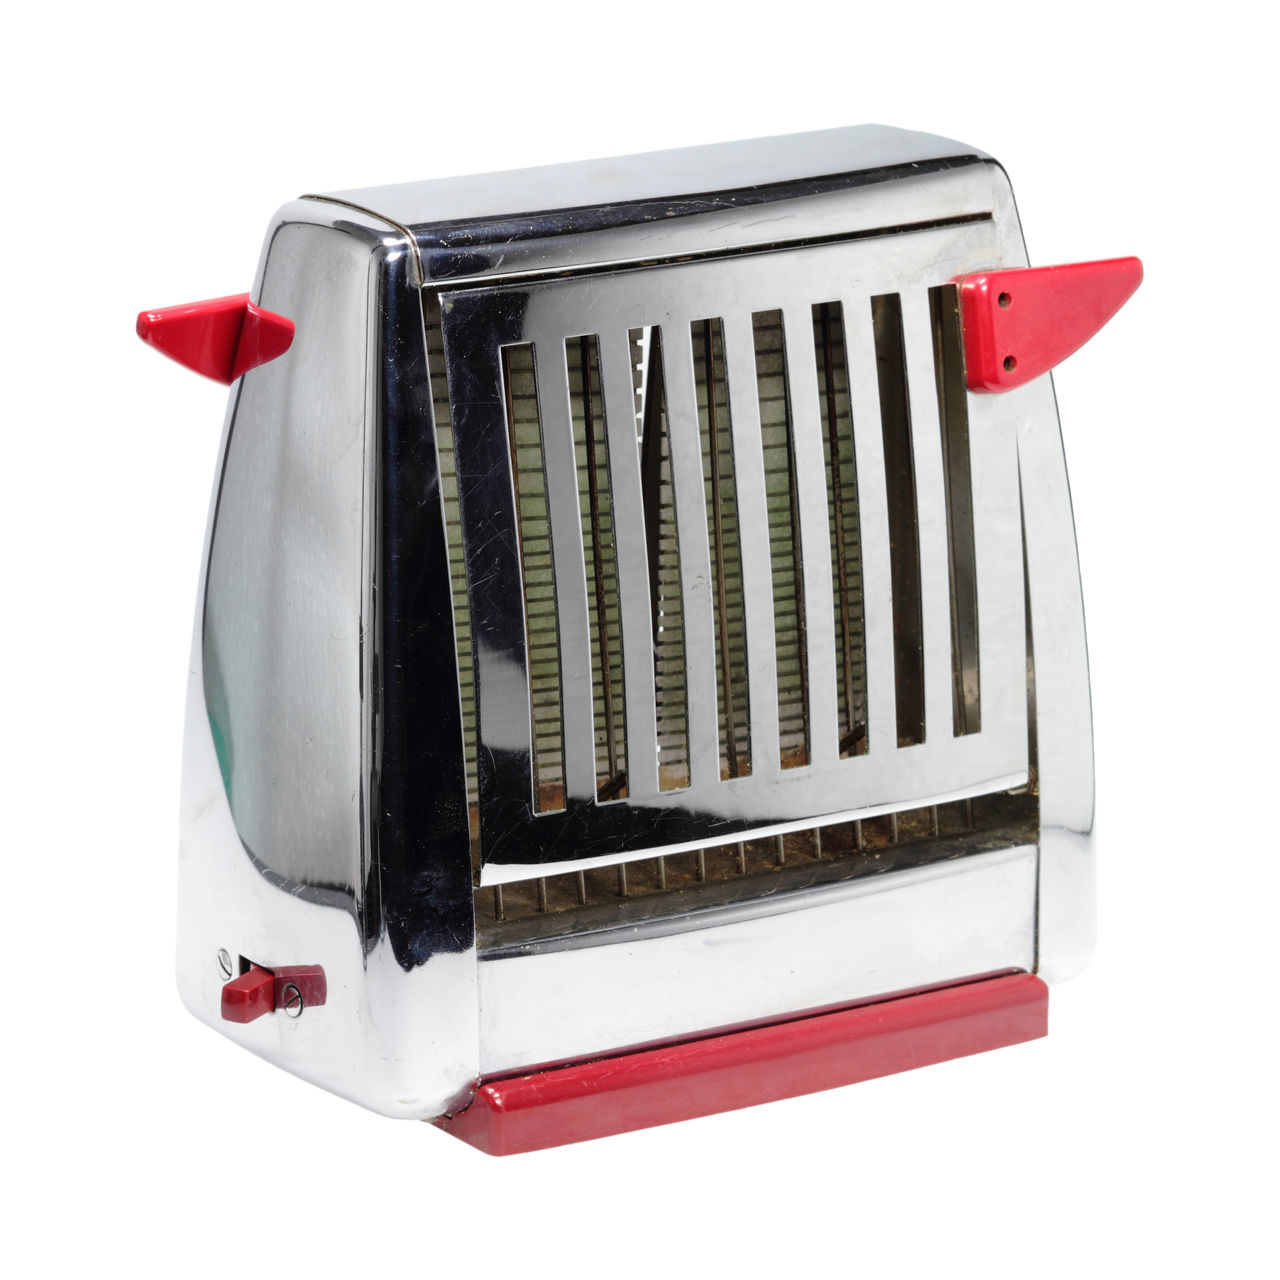 Close-Up Of Toaster Against White Background